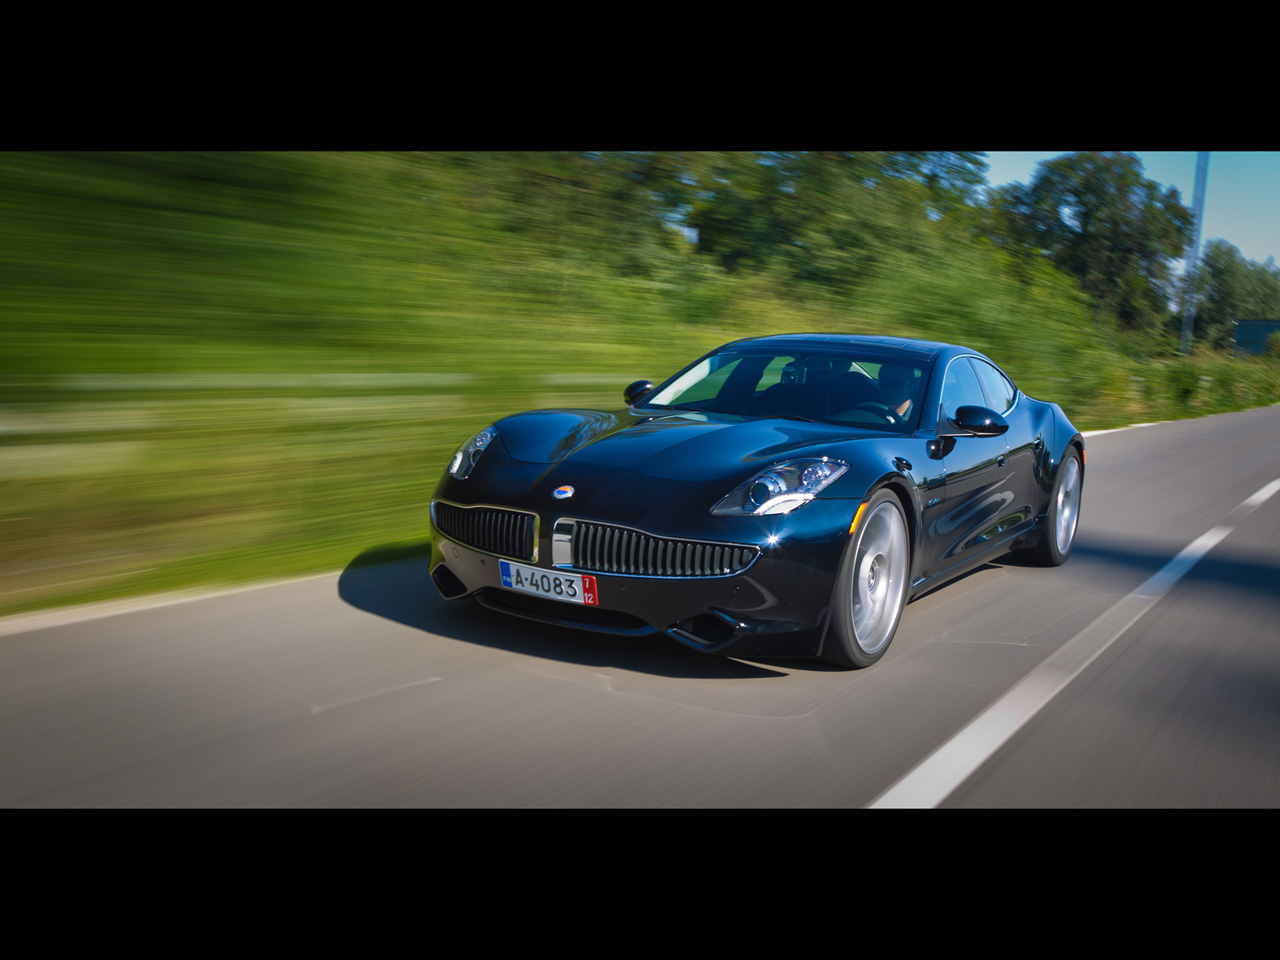 2012 Fisker Karma Motion Front Angle wallpapers | 2012 ...